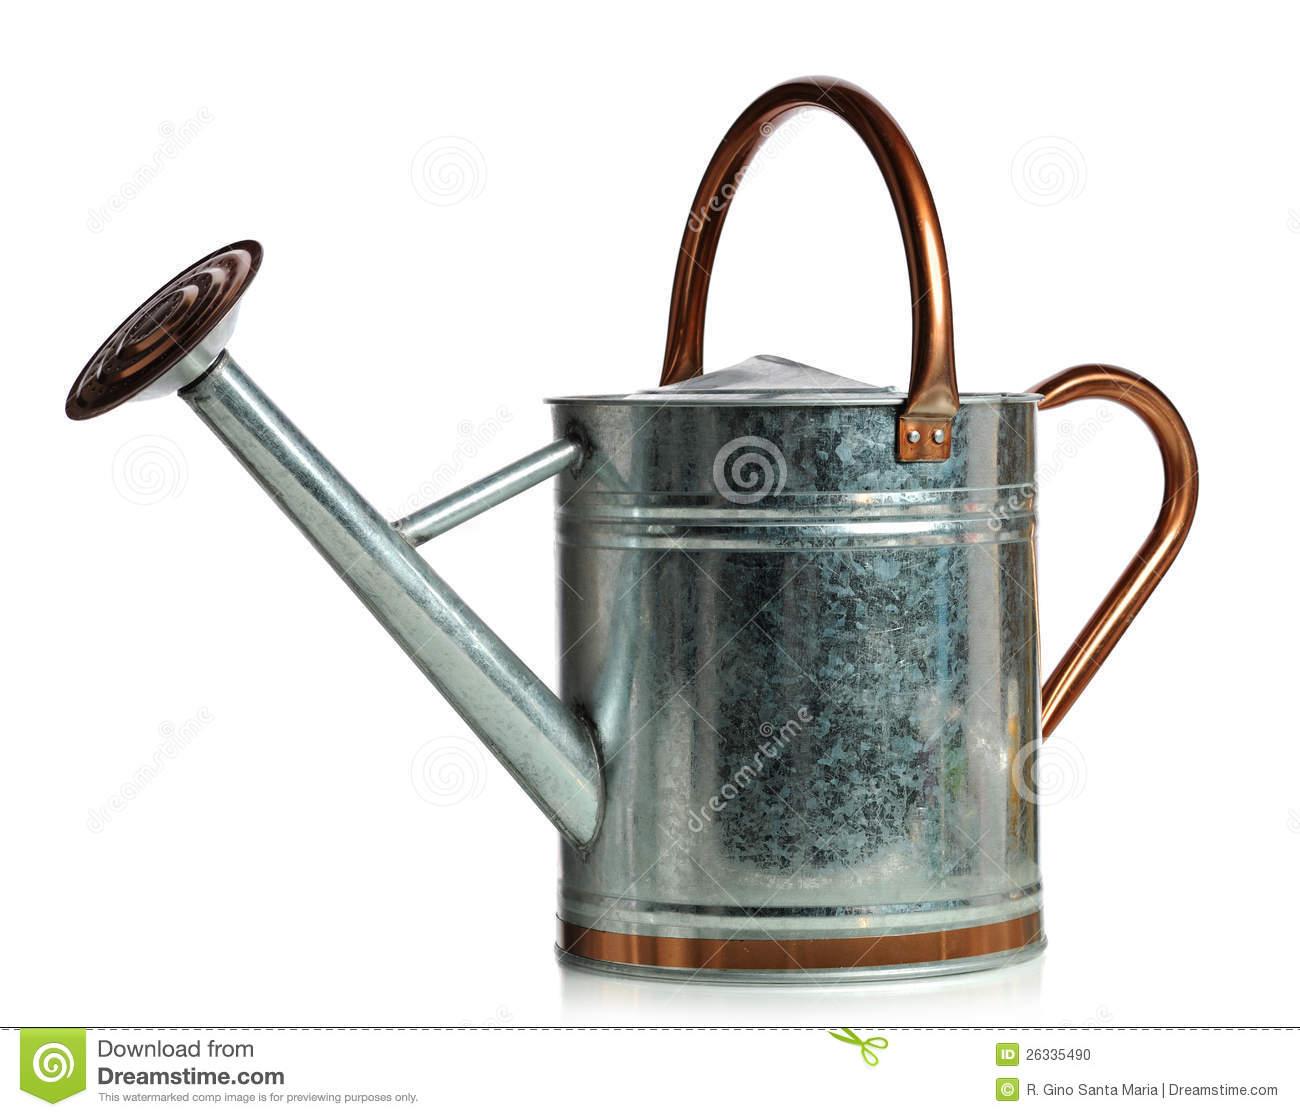 Metal watering can stock photo image of container gardening 26335490 - Sprinkling cans ...